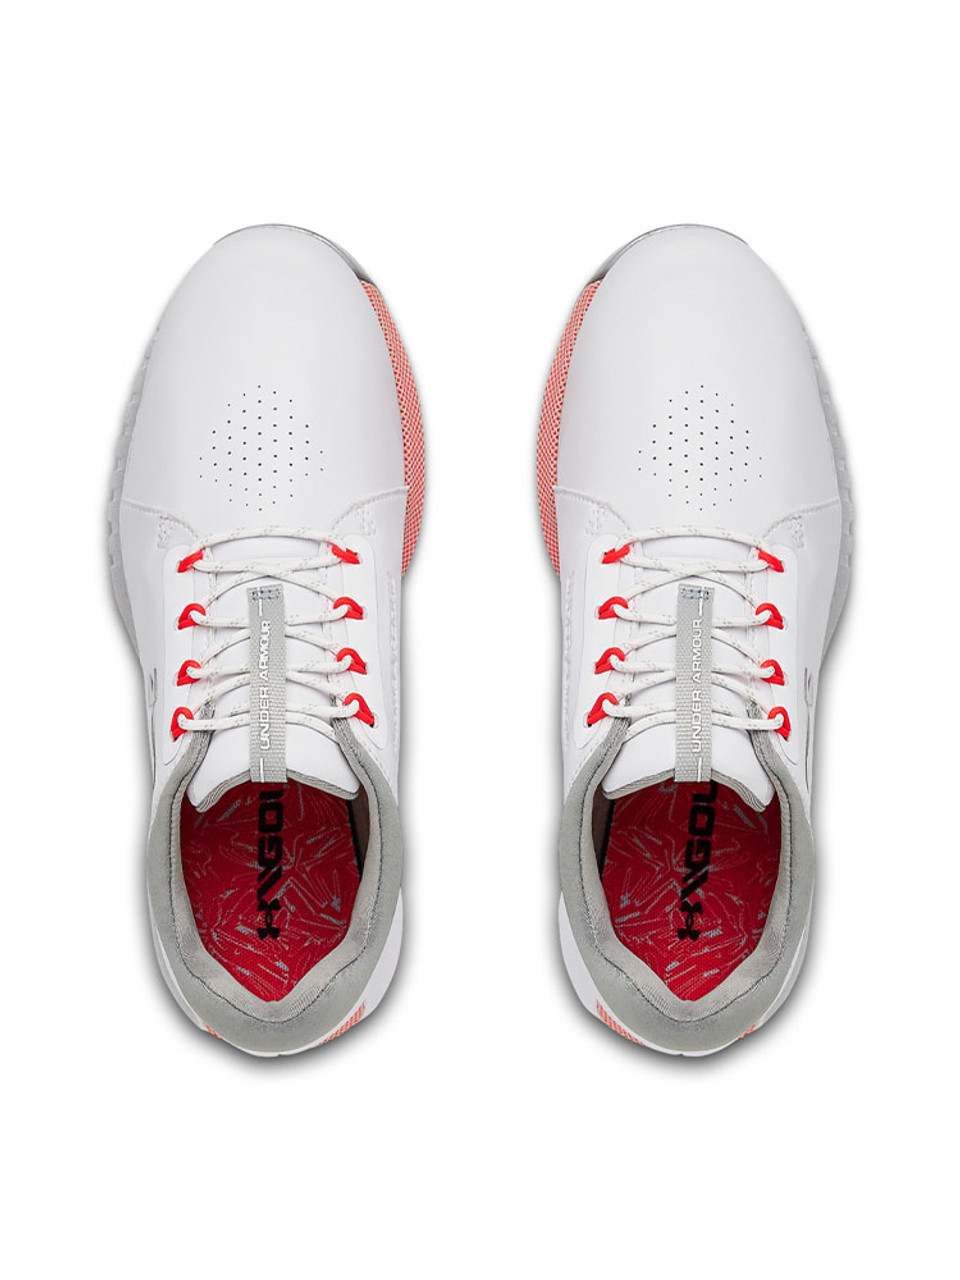 HOVR Drive Golf Shoes - White - Ladies